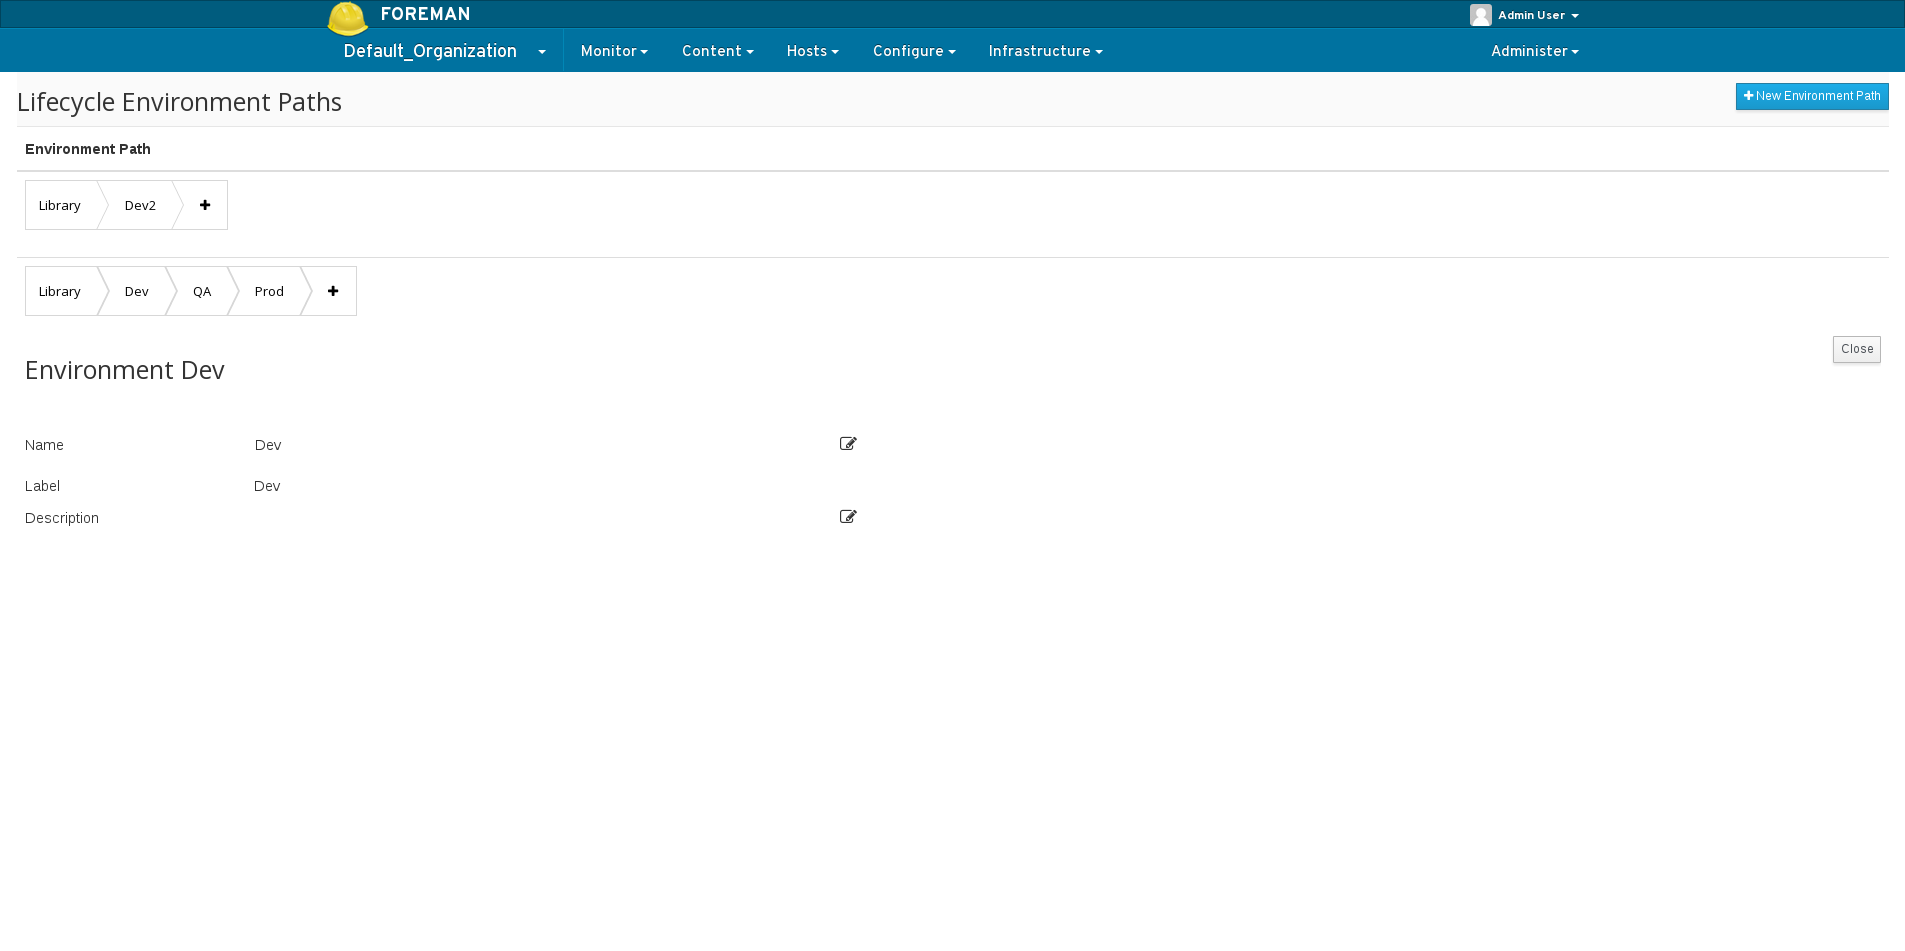 Viewing the details of the lifecycle environment